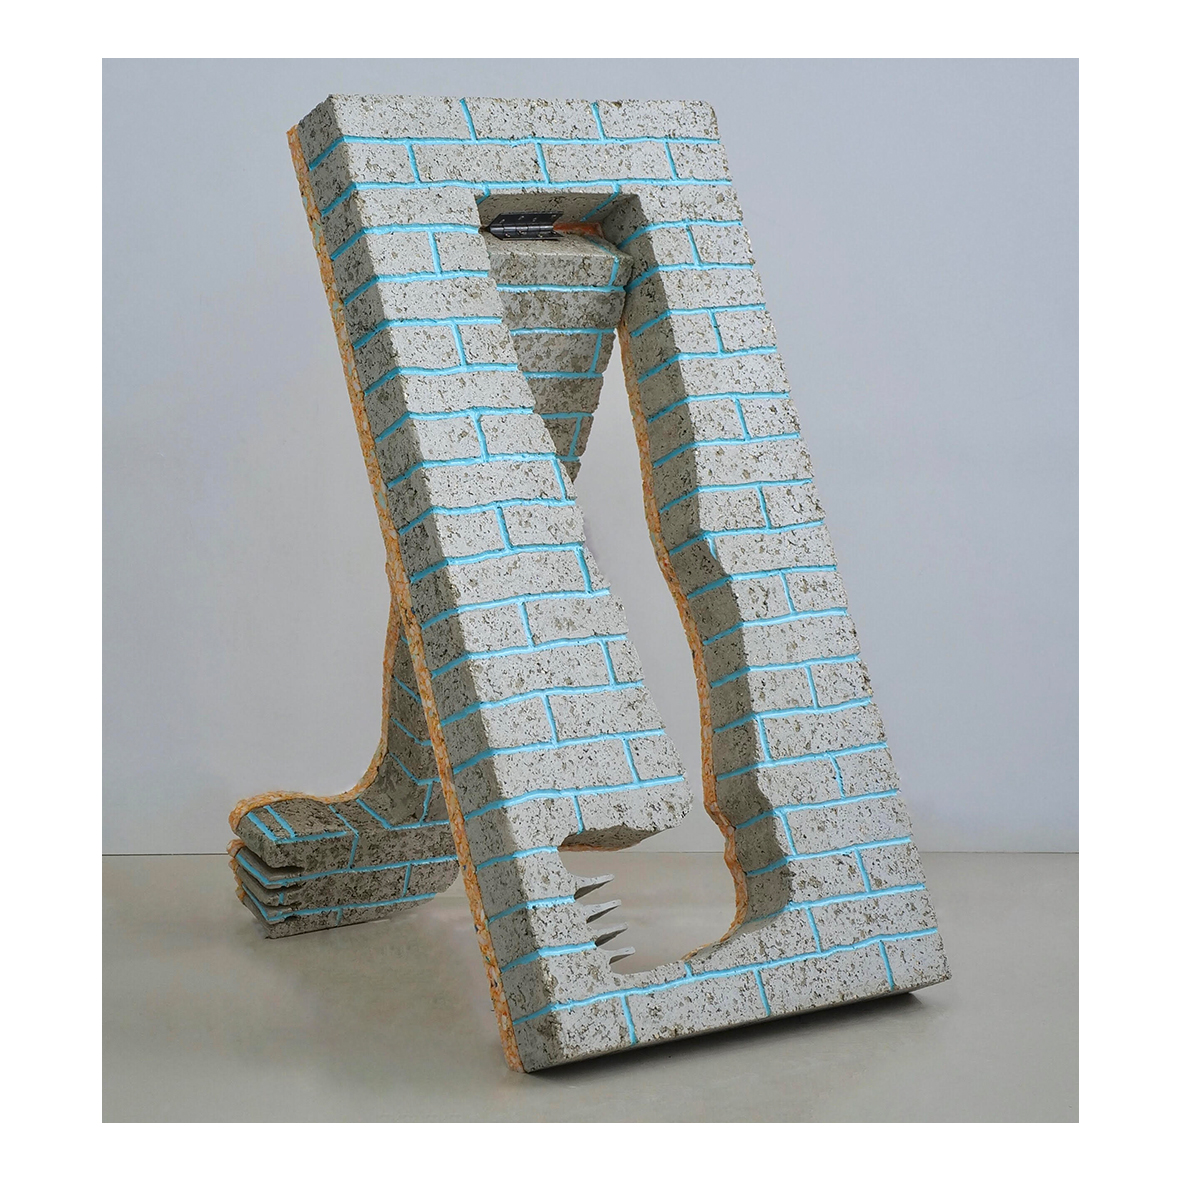 ally rosenberg artist Some Compliments Aren't Worth Accepting, (2020) Papercrete, reconstituted foam, silicone, earth pigments, steel hinge 120 x 60 x 70cm